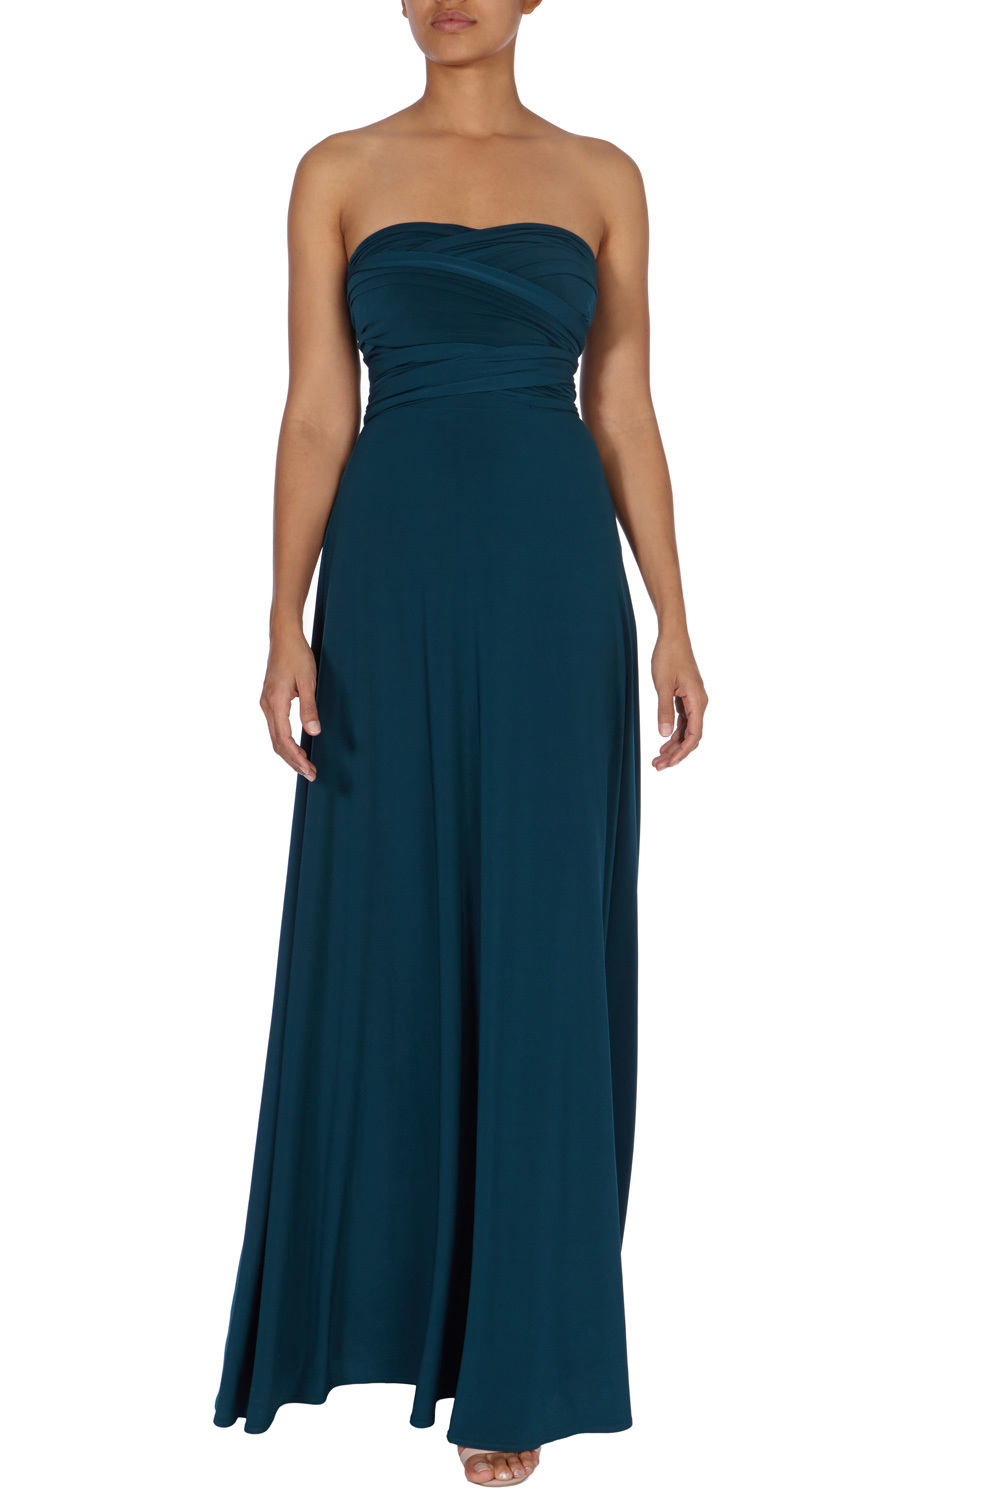 Corwin Multi Tie Dress - neckline: strapless (straight/sweetheart); pattern: plain; style: maxi dress; sleeve style: strapless; length: ankle length; bust detail: subtle bust detail; predominant colour: teal; occasions: evening; fit: fitted at waist & bust; fibres: polyester/polyamide - 100%; hip detail: subtle/flattering hip detail; sleeve length: sleeveless; pattern type: fabric; texture group: jersey - stretchy/drapey; season: a/w 2015; wardrobe: event